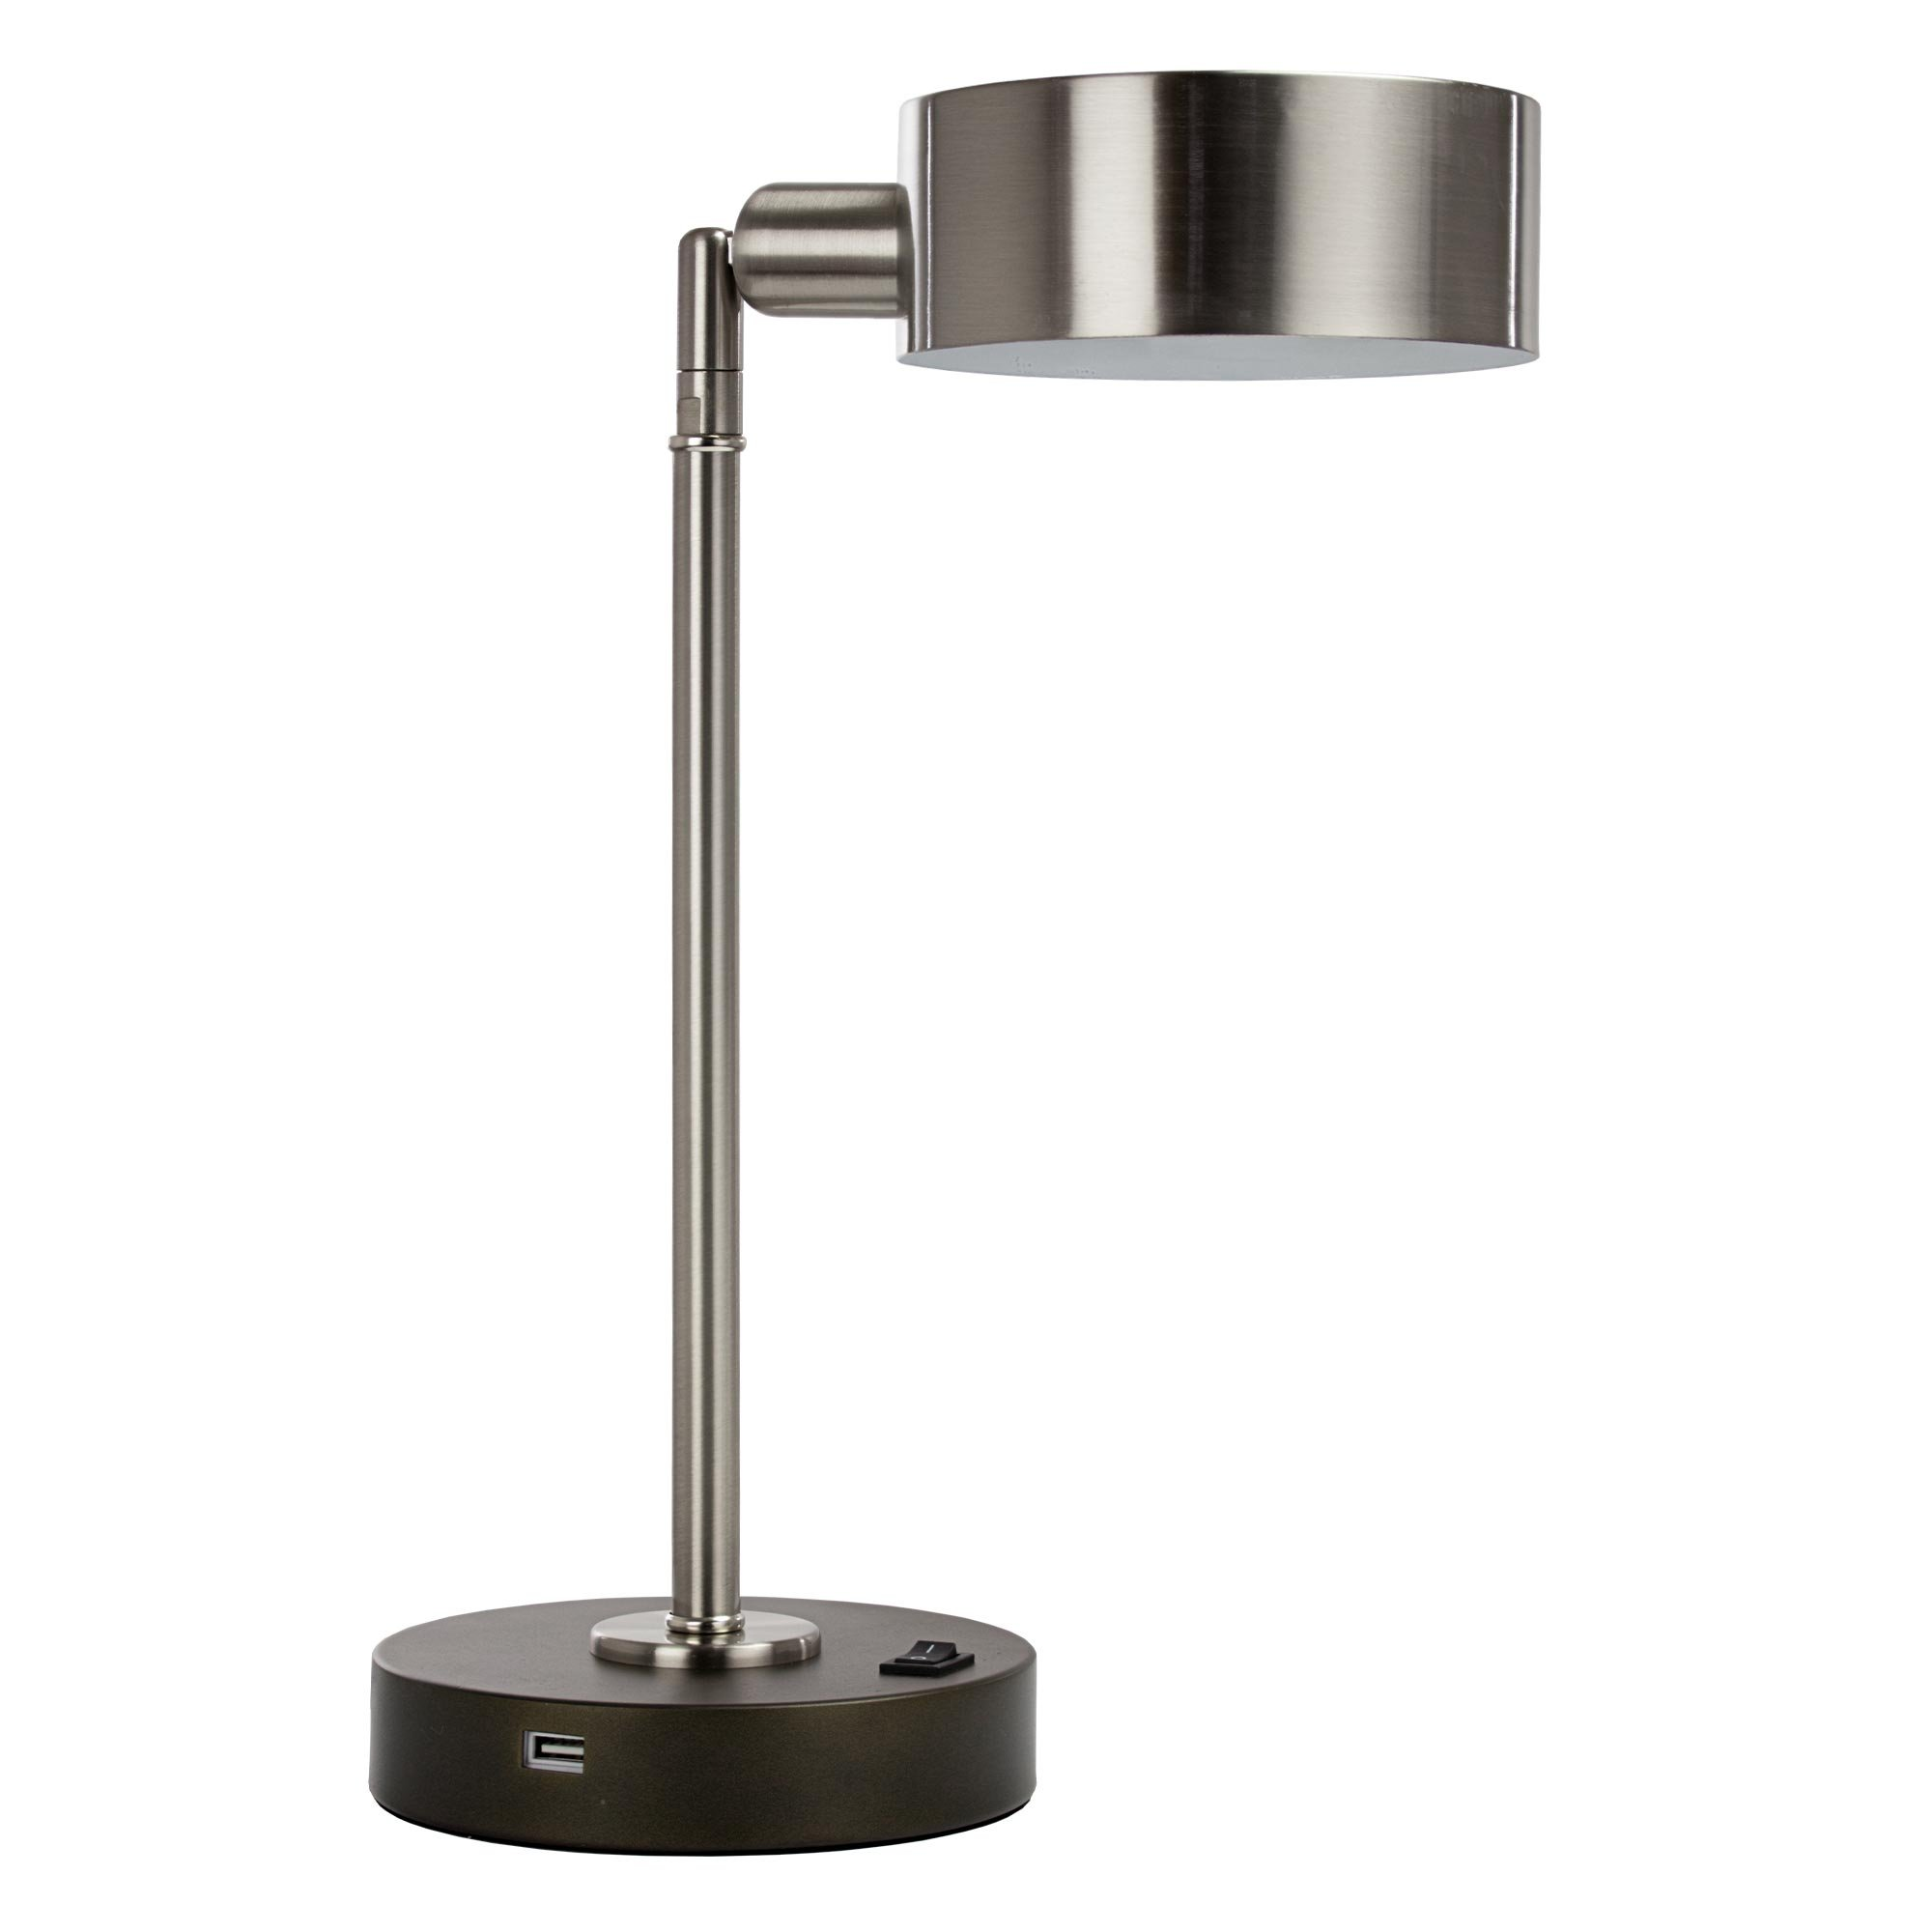 Major-Q Elegance LED USB Bedroom Office Table & Desk Lamp Modern Light with Smart Functional Port Ambient Living Dwelling Pivot Turn Swivel Beautiful Convenient On/Off Switch - Brushed Steel Silver